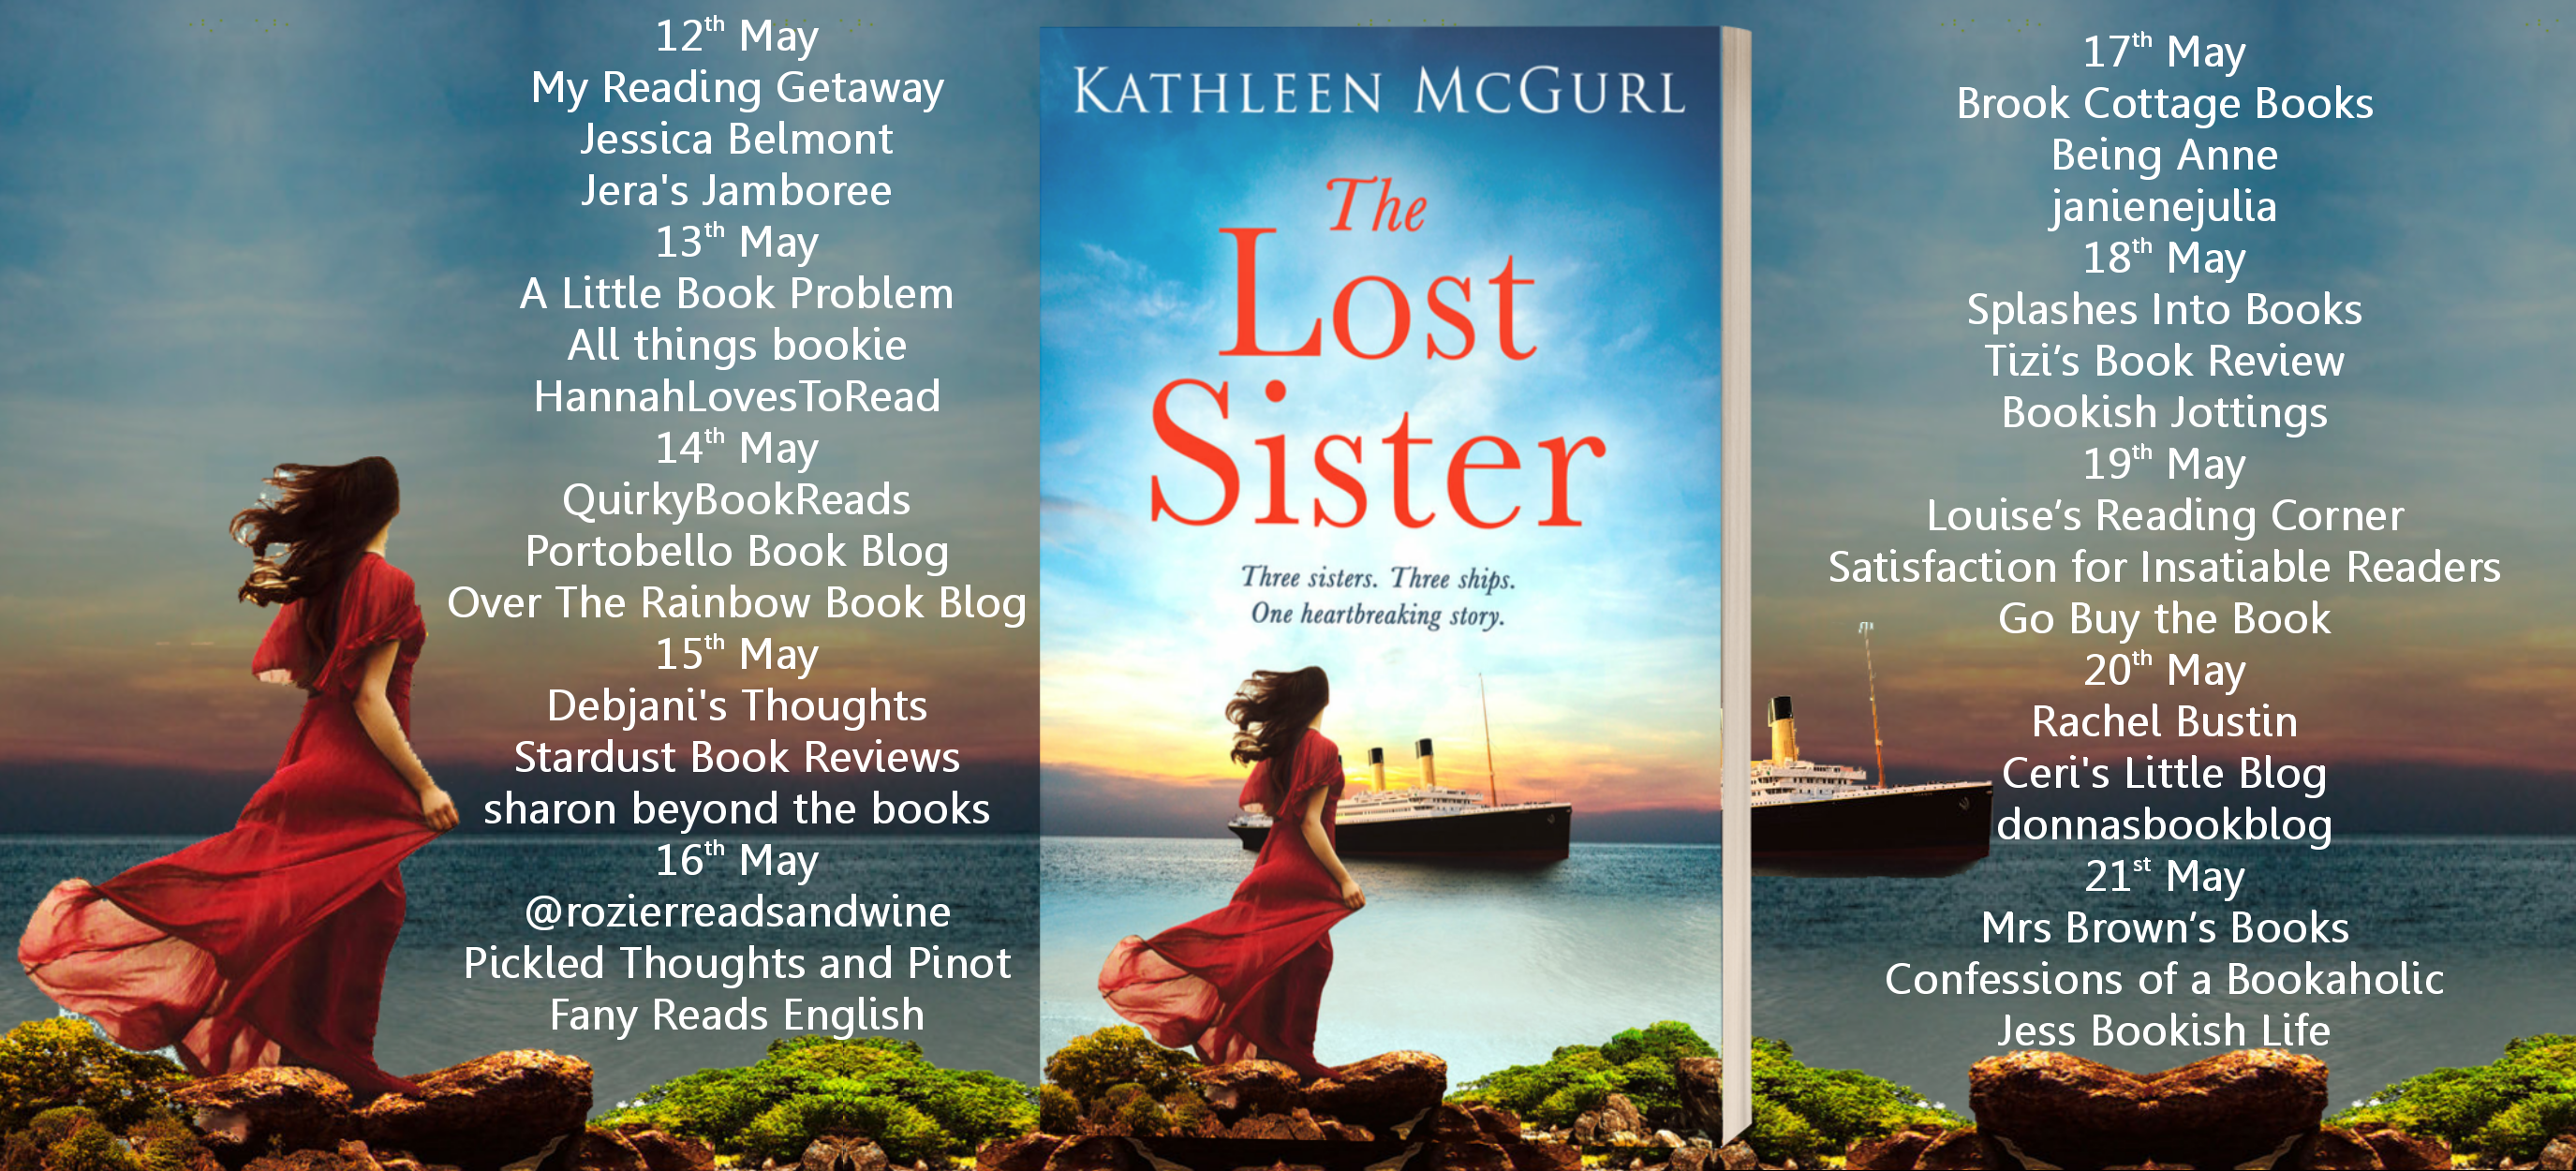 The Lost Sister Full Tour Banner